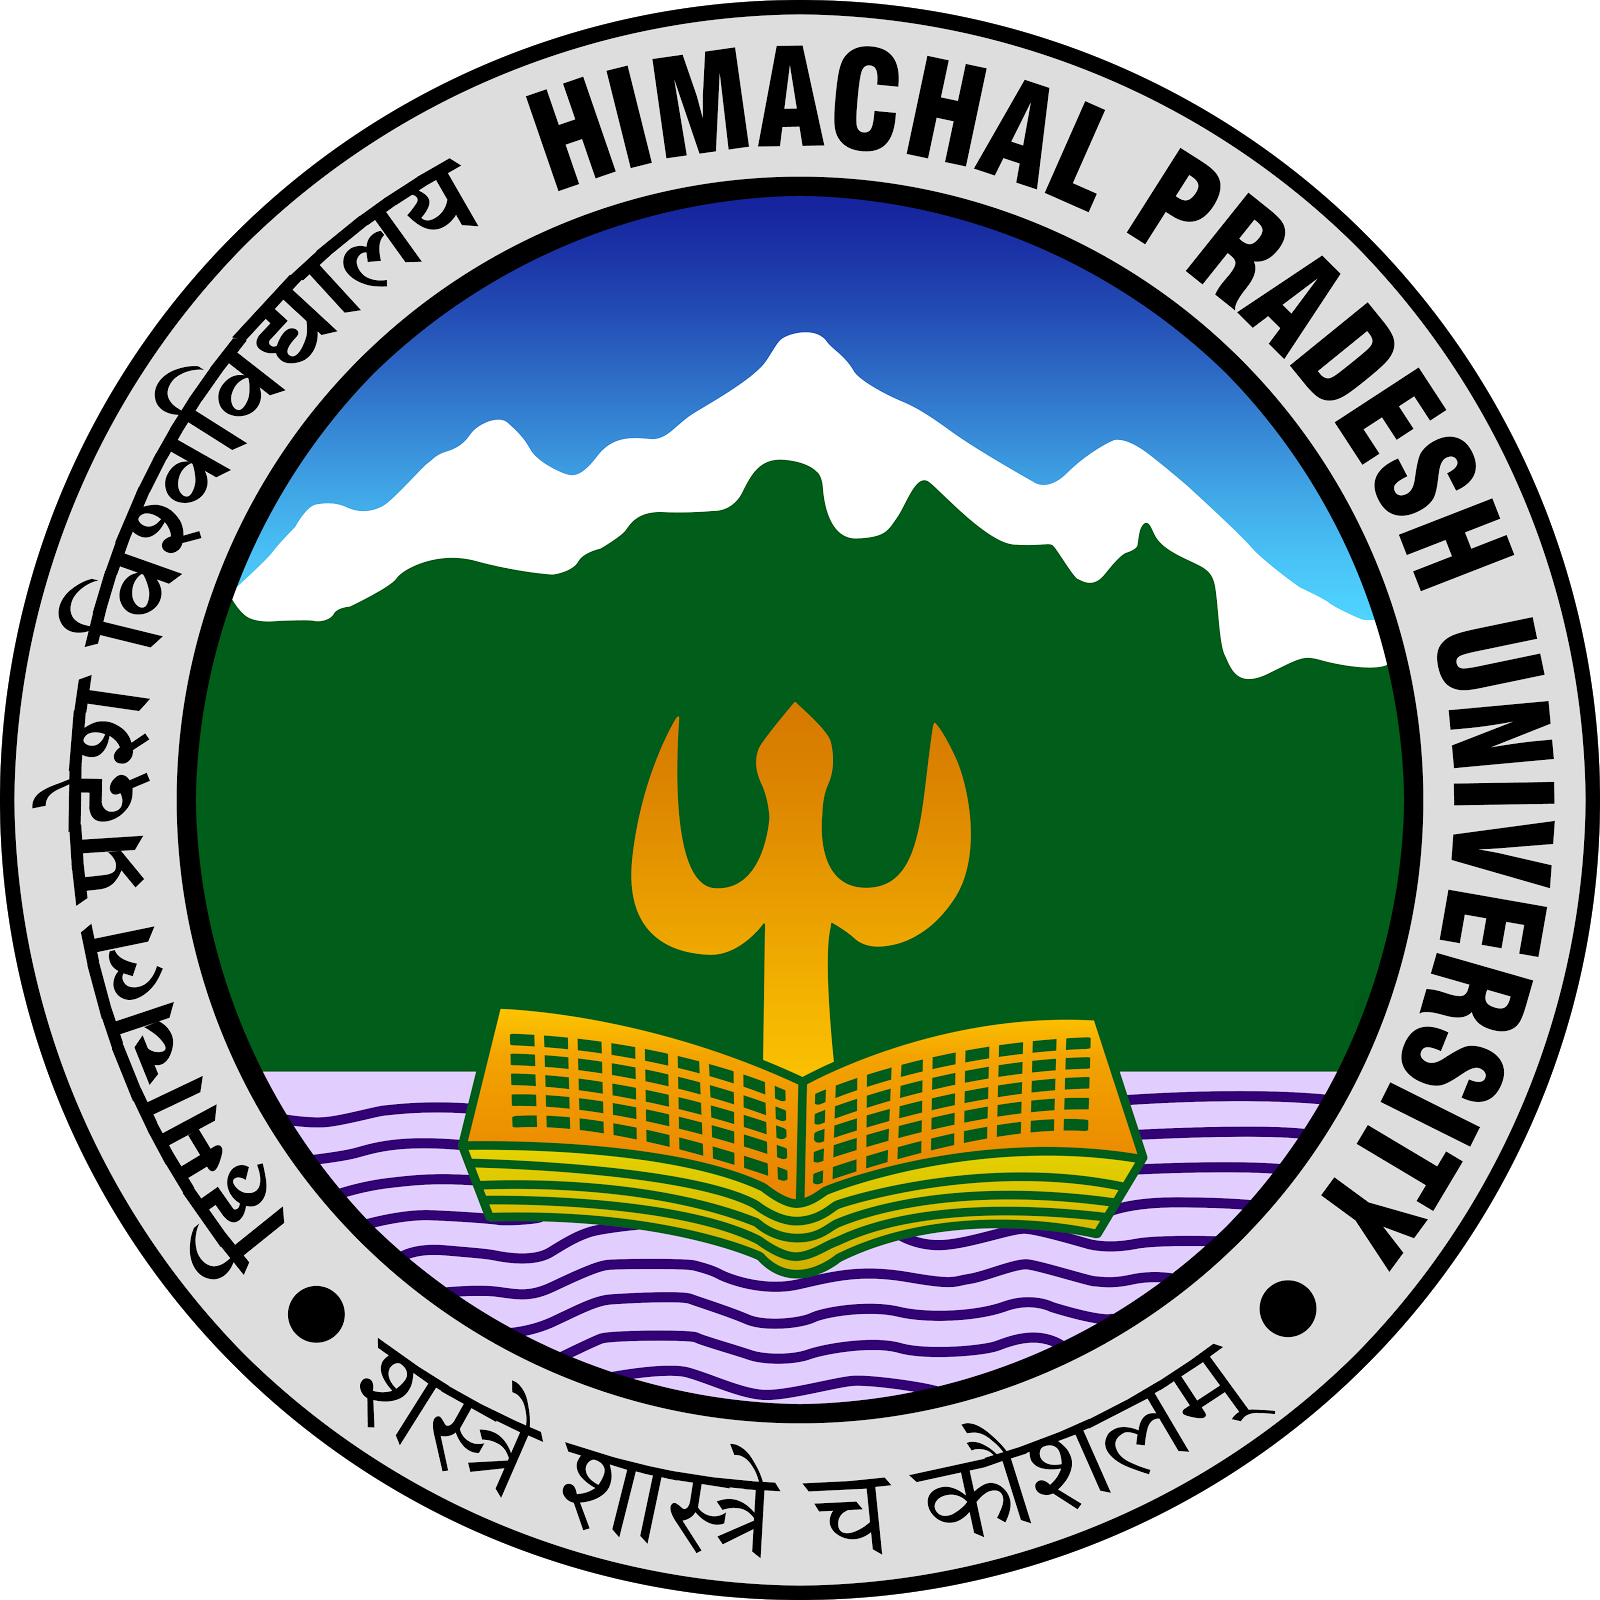 Himachal Pradesh Technical University (HPTU) Results 2015 {www.himtu.ac.in}